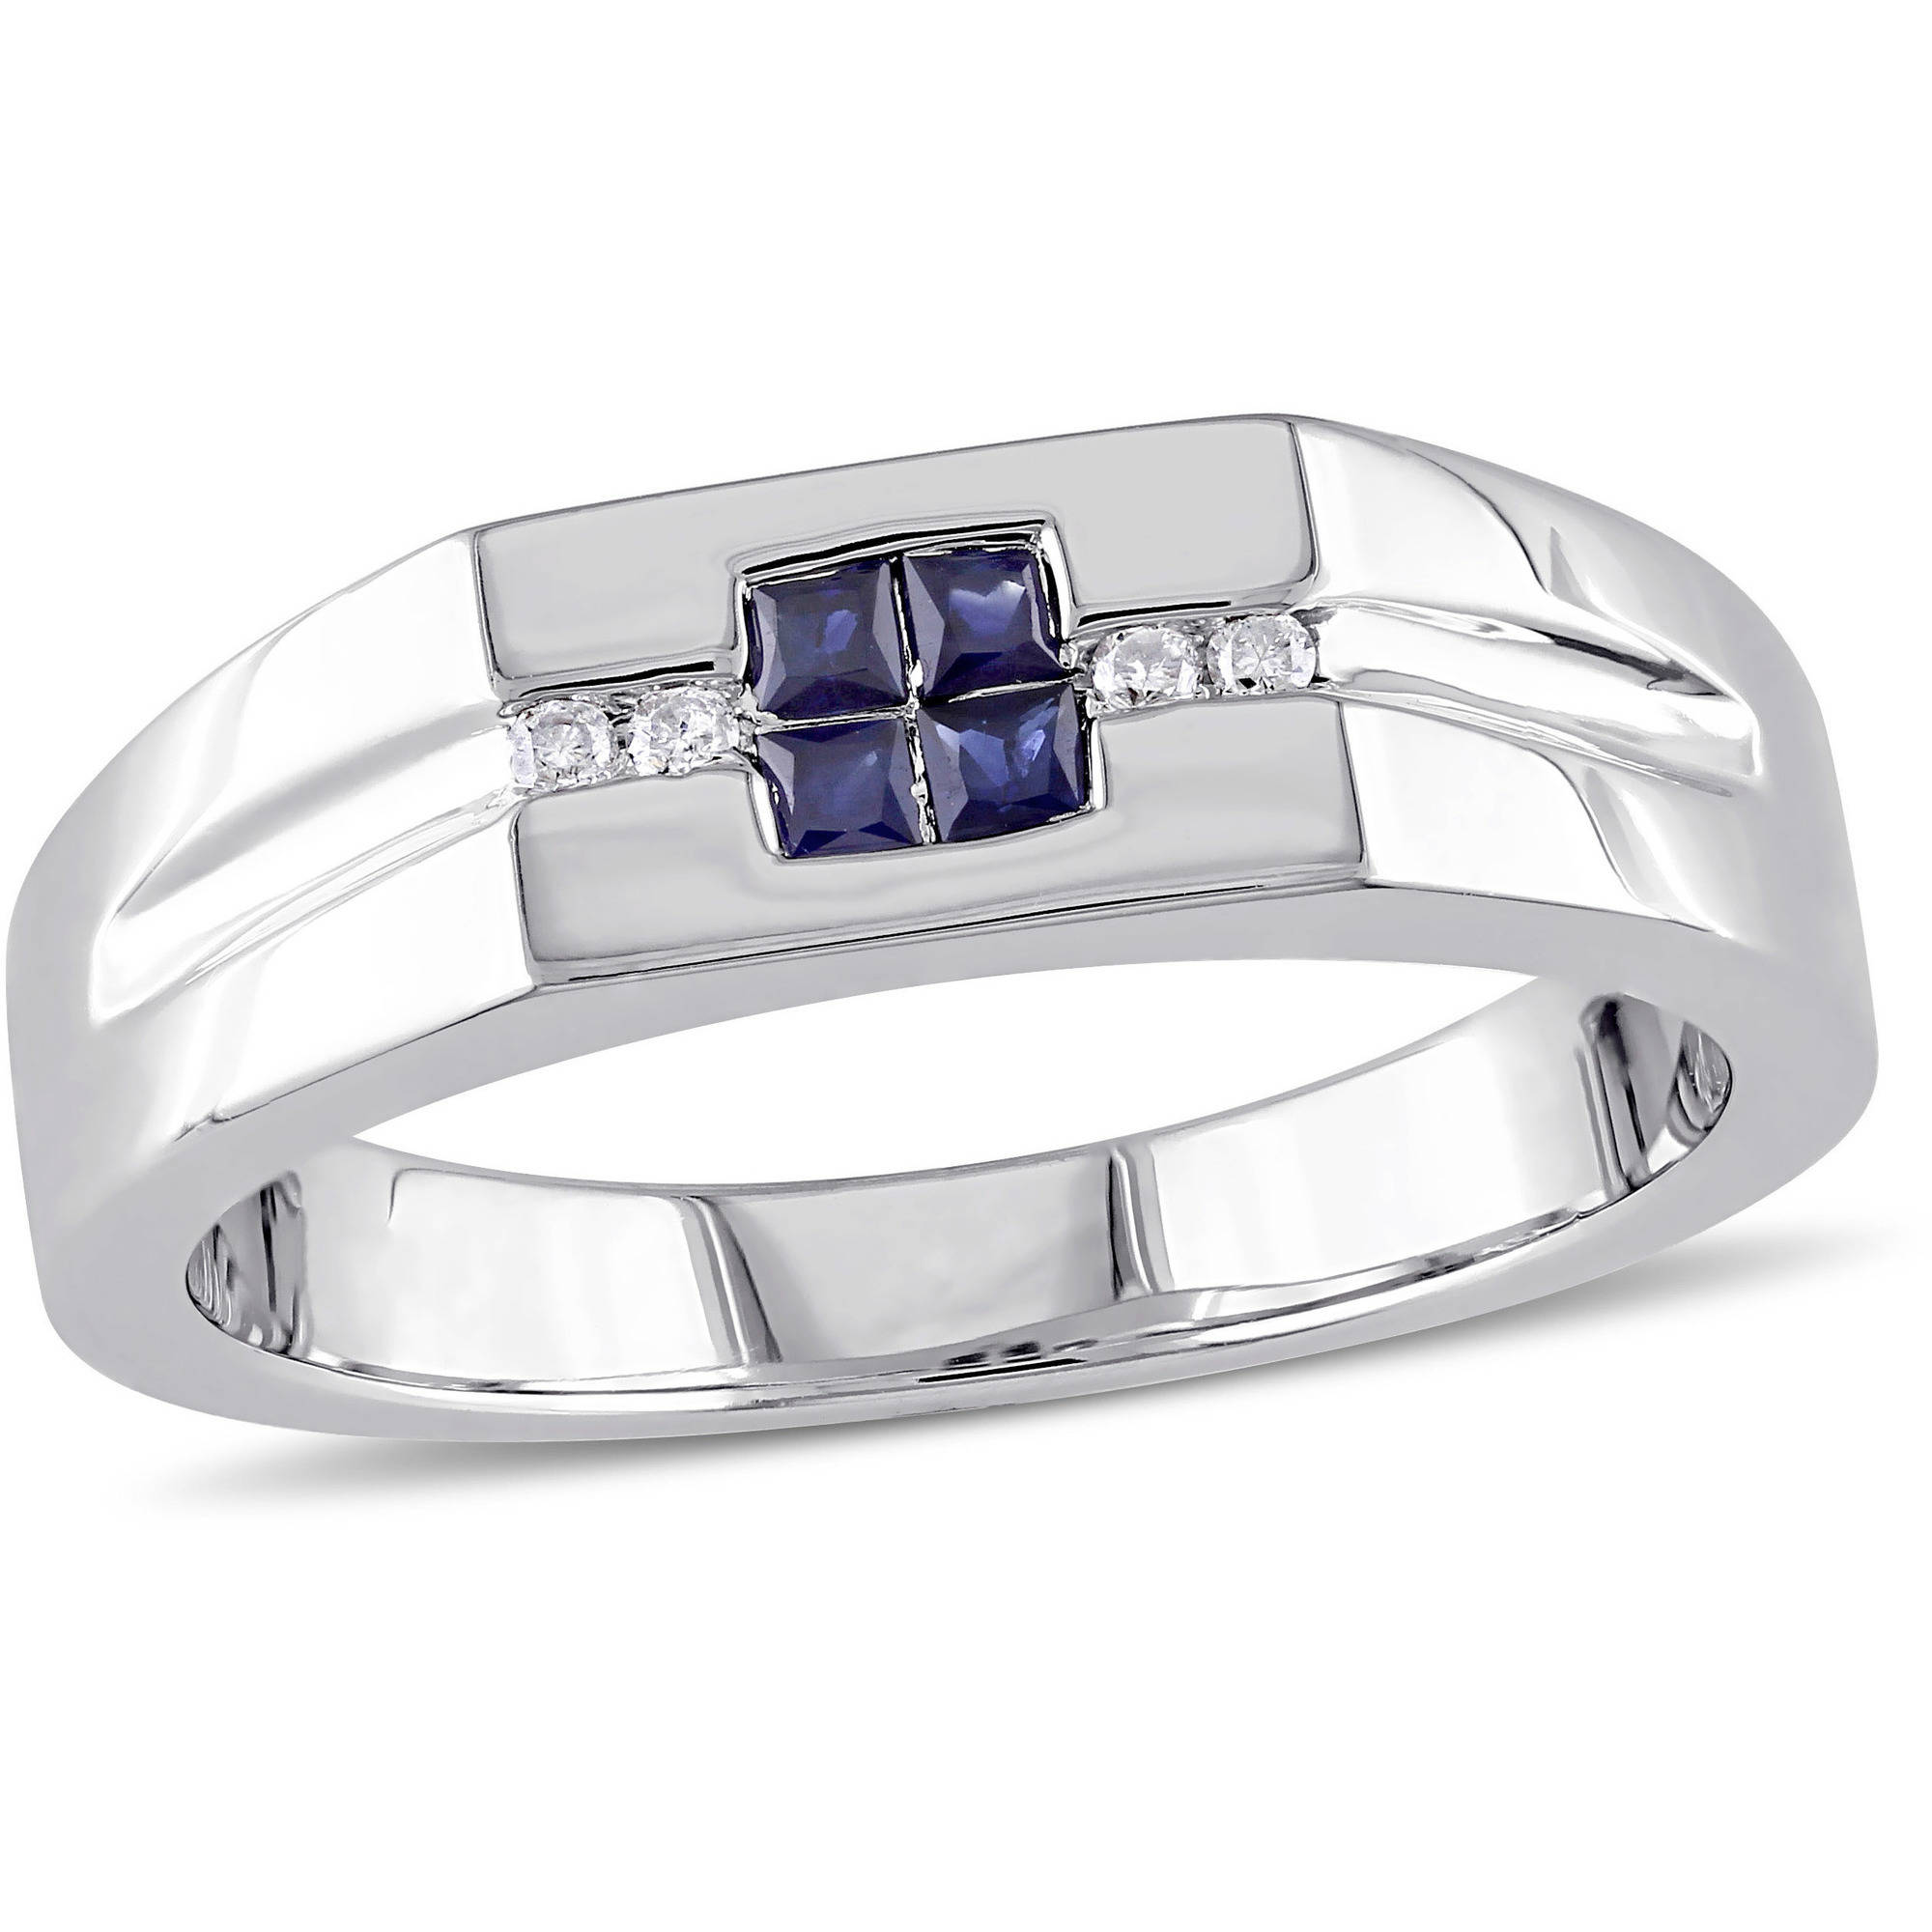 Tangelo Men's 1/3 Carat T.G.W. Sapphire and Diamond-Accent Sterling Silver Wedding Band